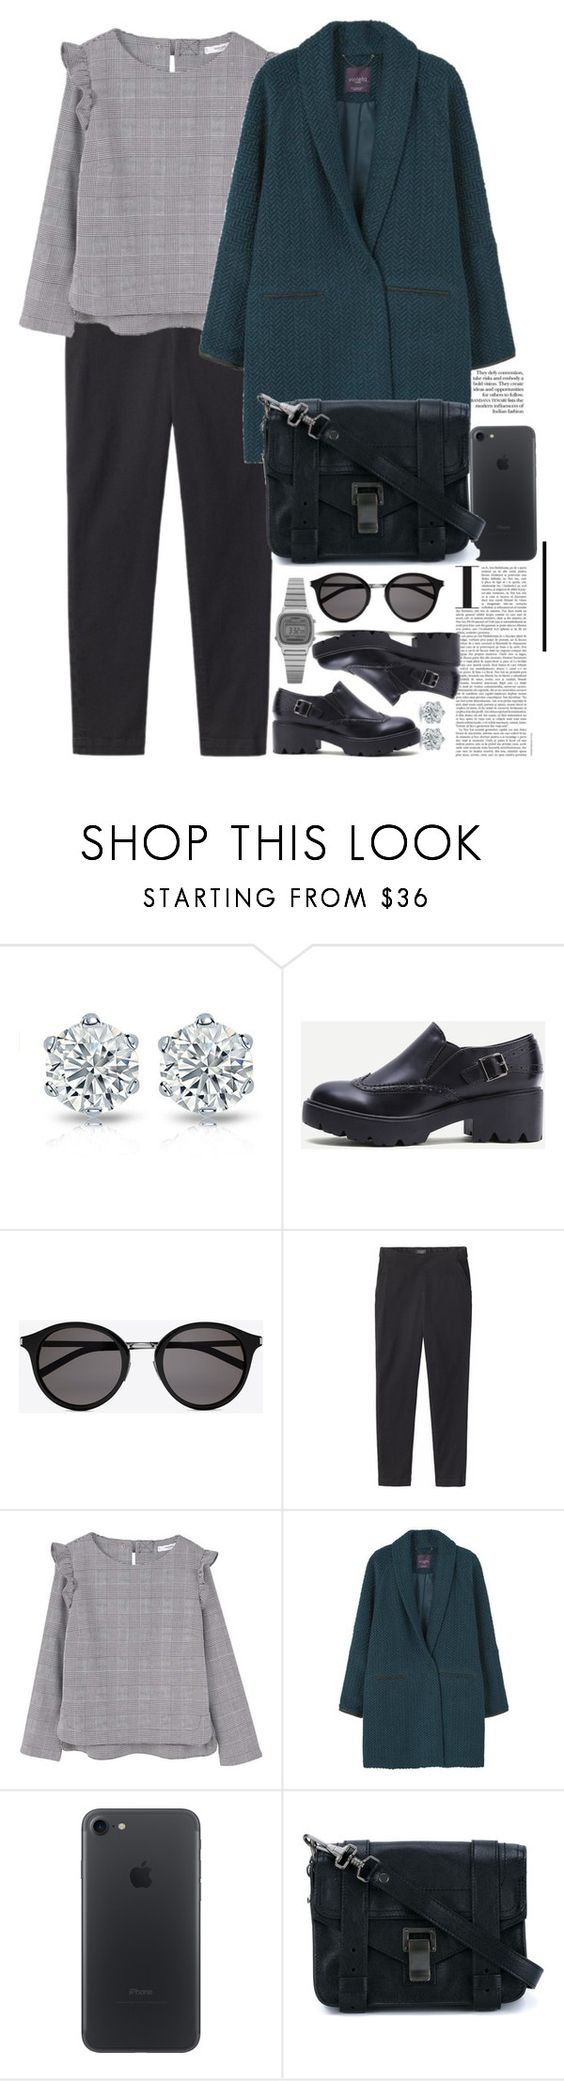 """""""Без названия #3425"""" by catelinota-a ❤ liked on Polyvore featuring Yves Saint Laurent, Toast, MANGO, Proenza Schouler and Casio"""